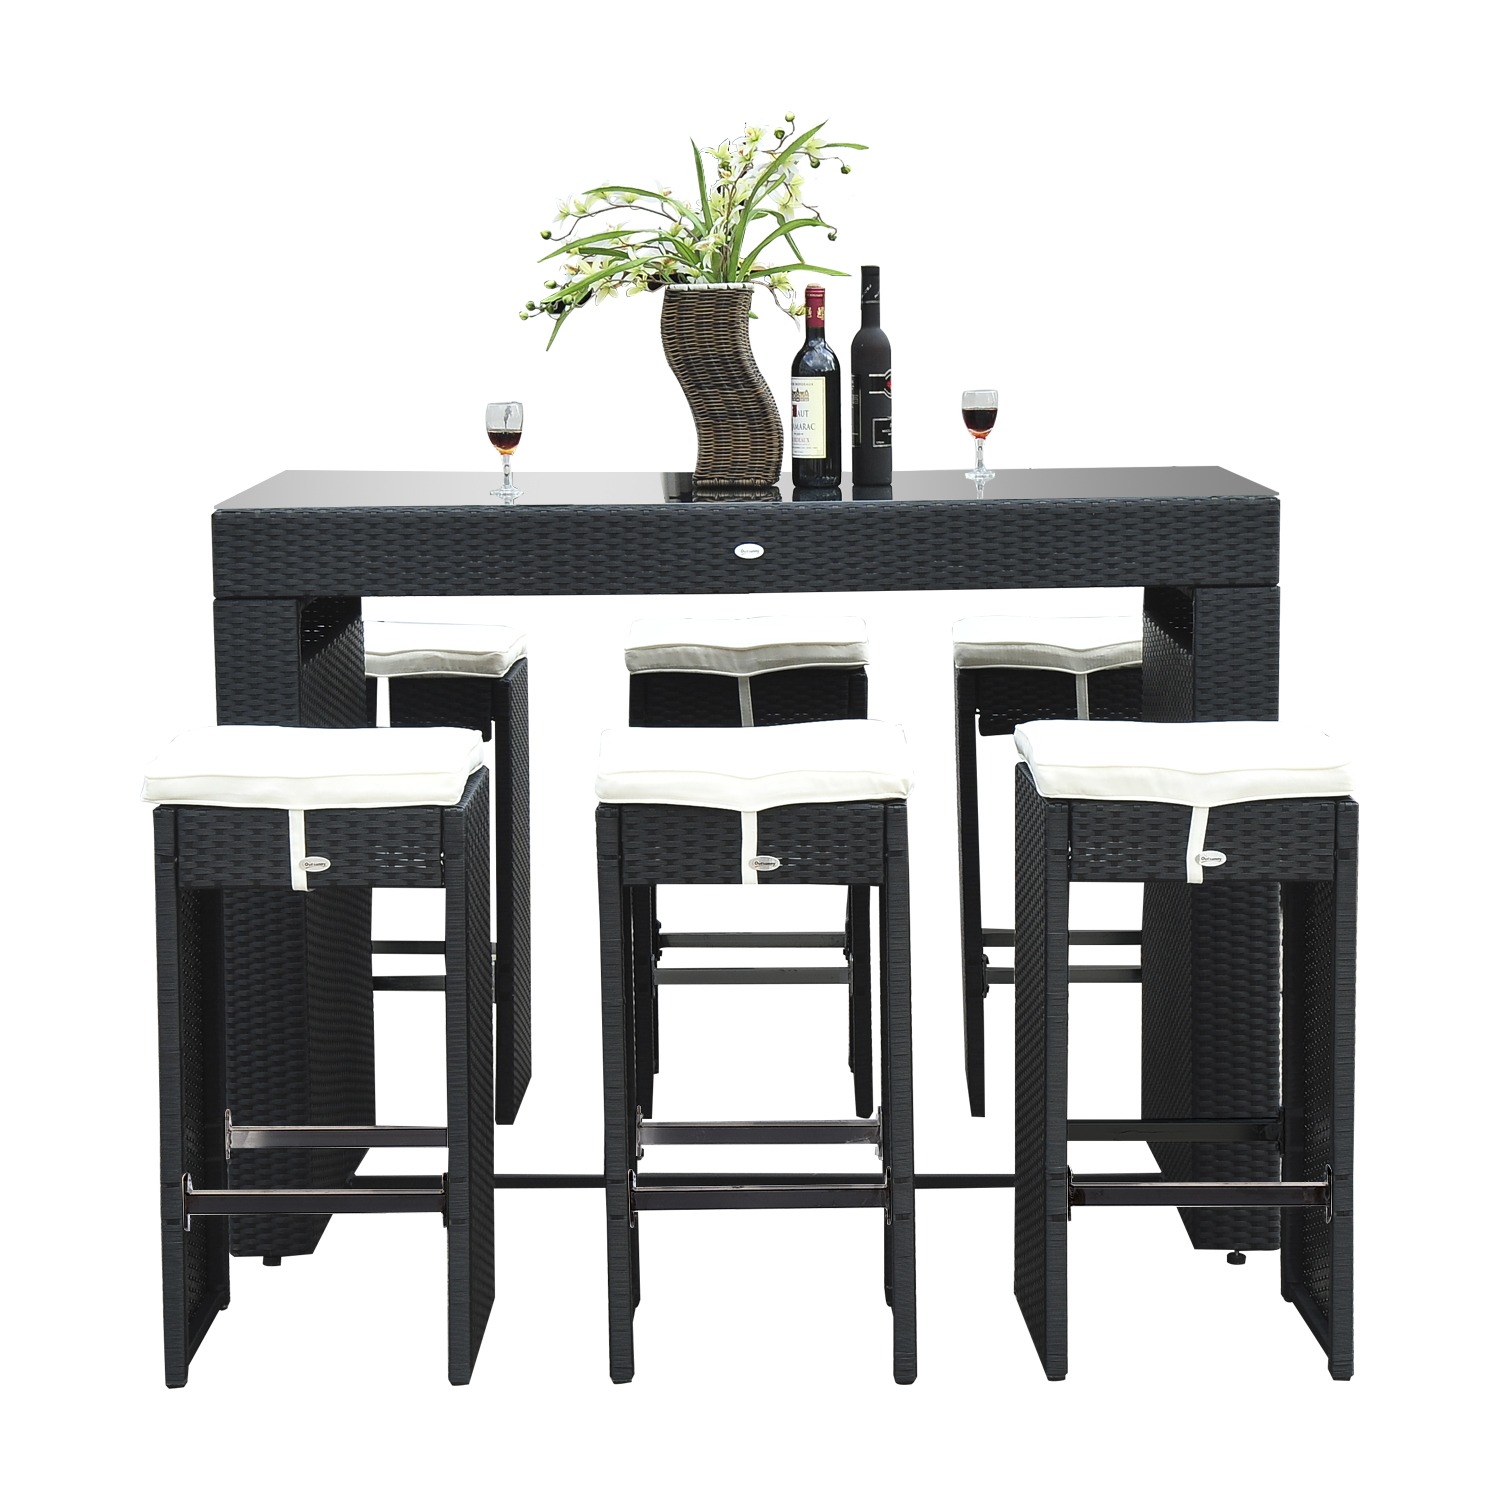 rattan table and chairs where to buy kitchen outsunny 7pc wicker bar stool dining set black walmart com